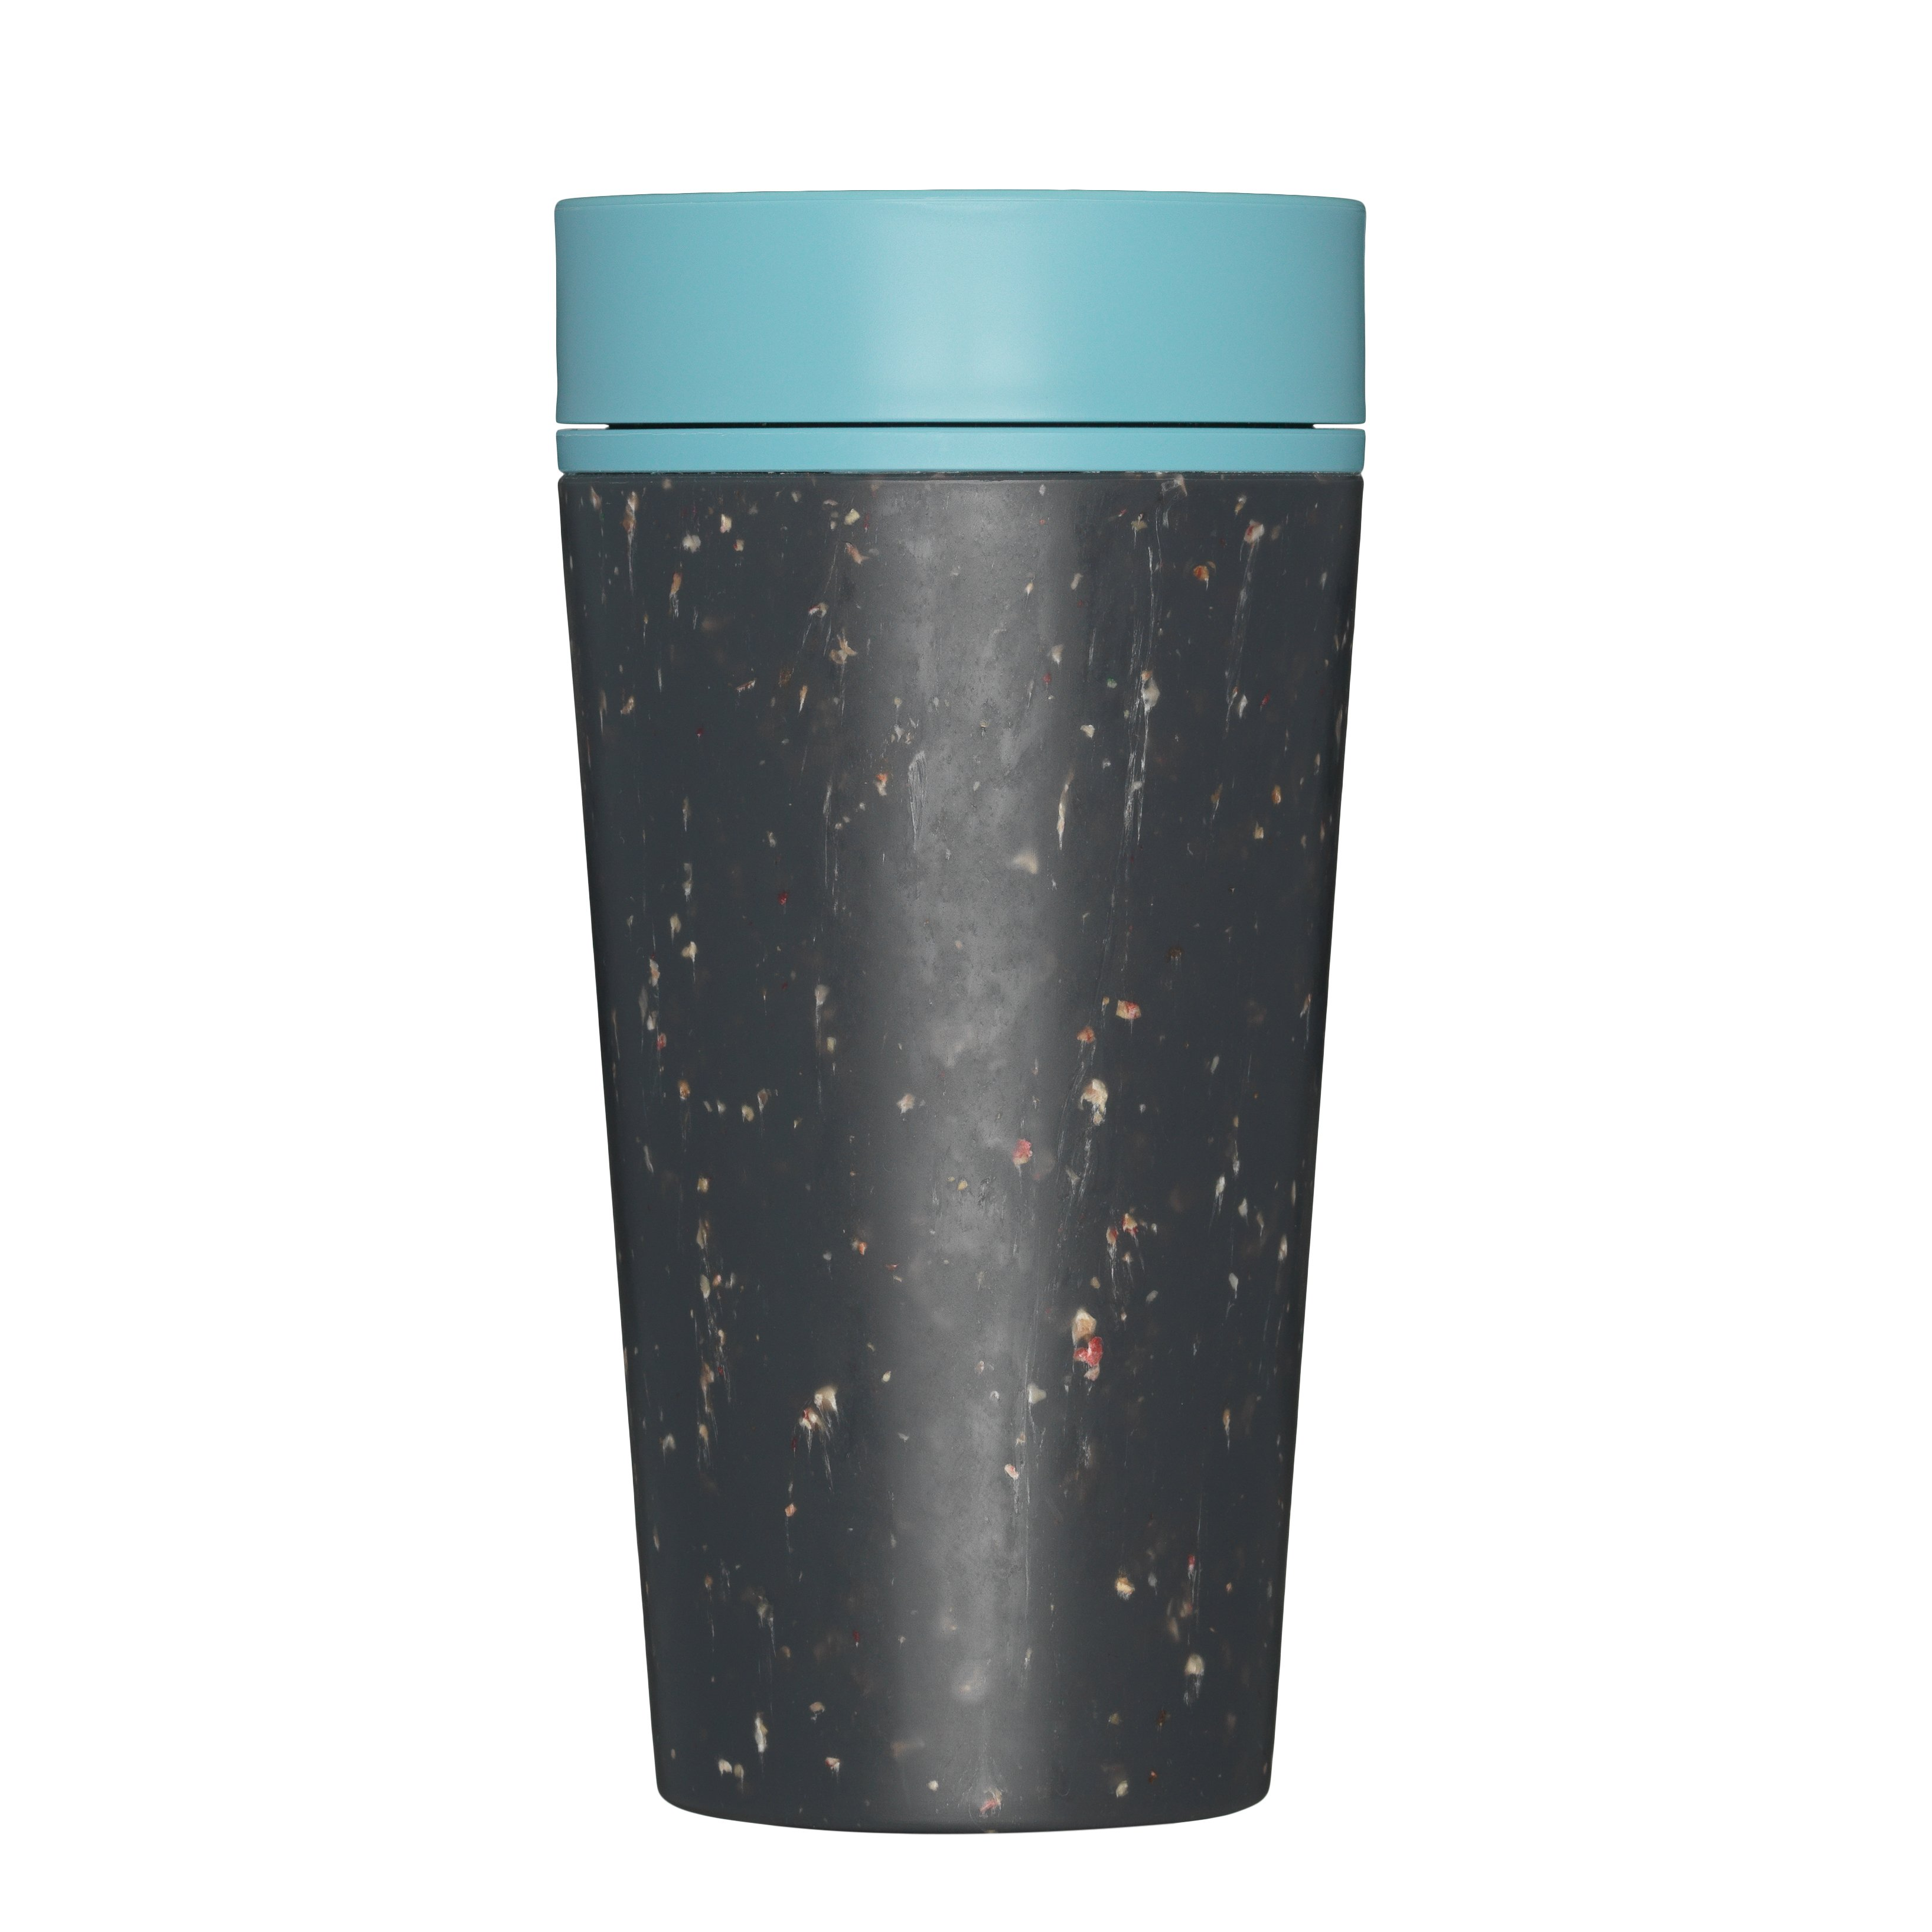 rCUP Kelímek Black and Teal